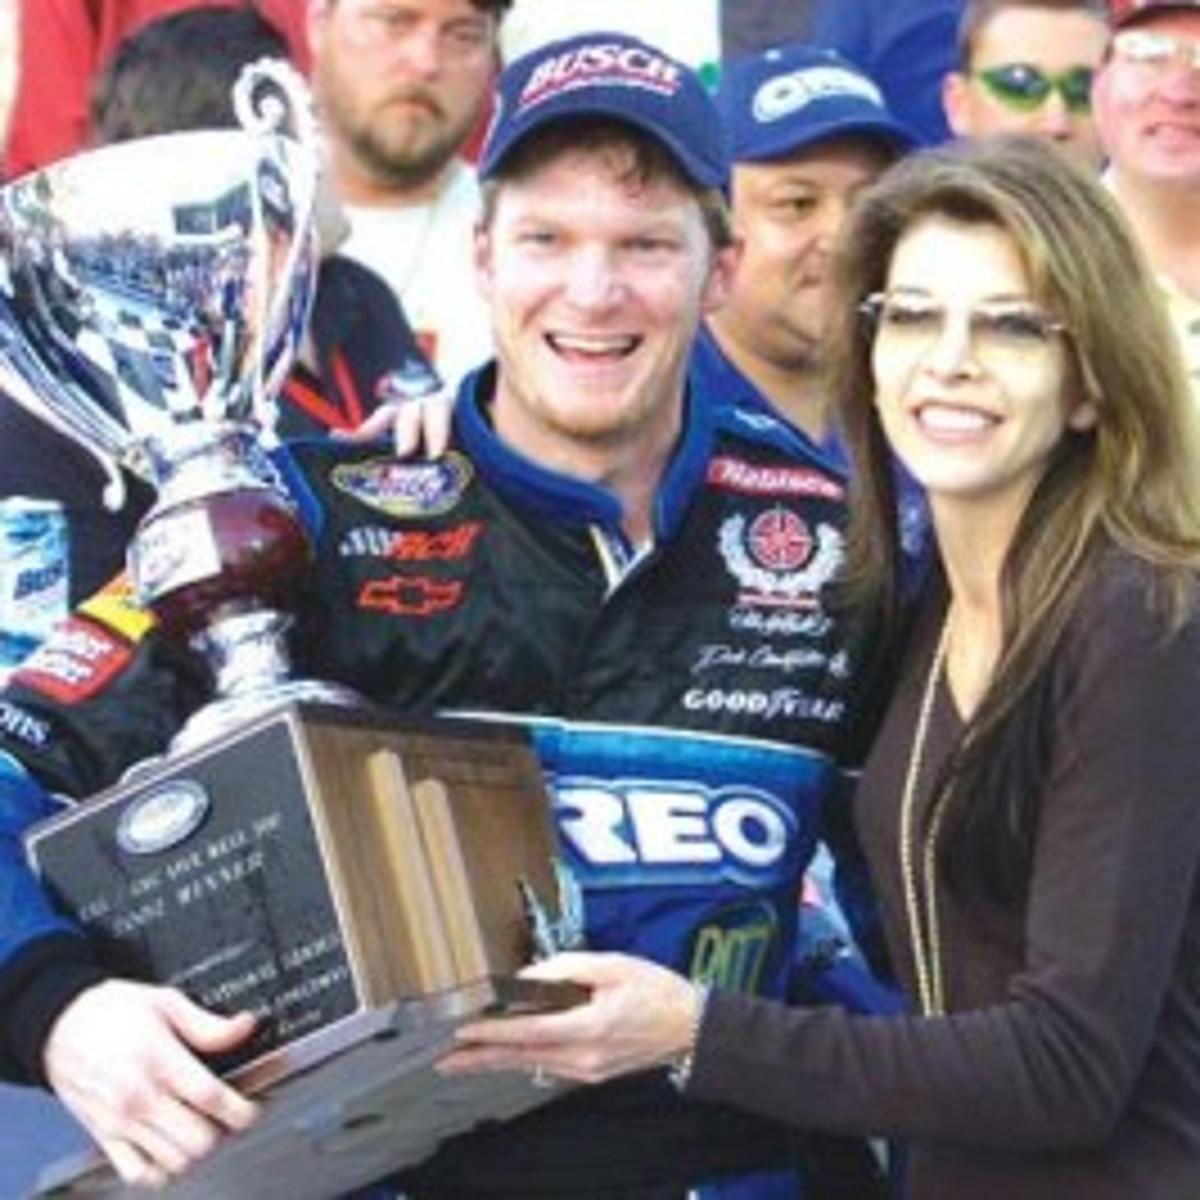 Where Is Teresa Earnhardt Now 2020 – Teresa earnhardt was the third wife of nascar legend dale earnhardt sr.